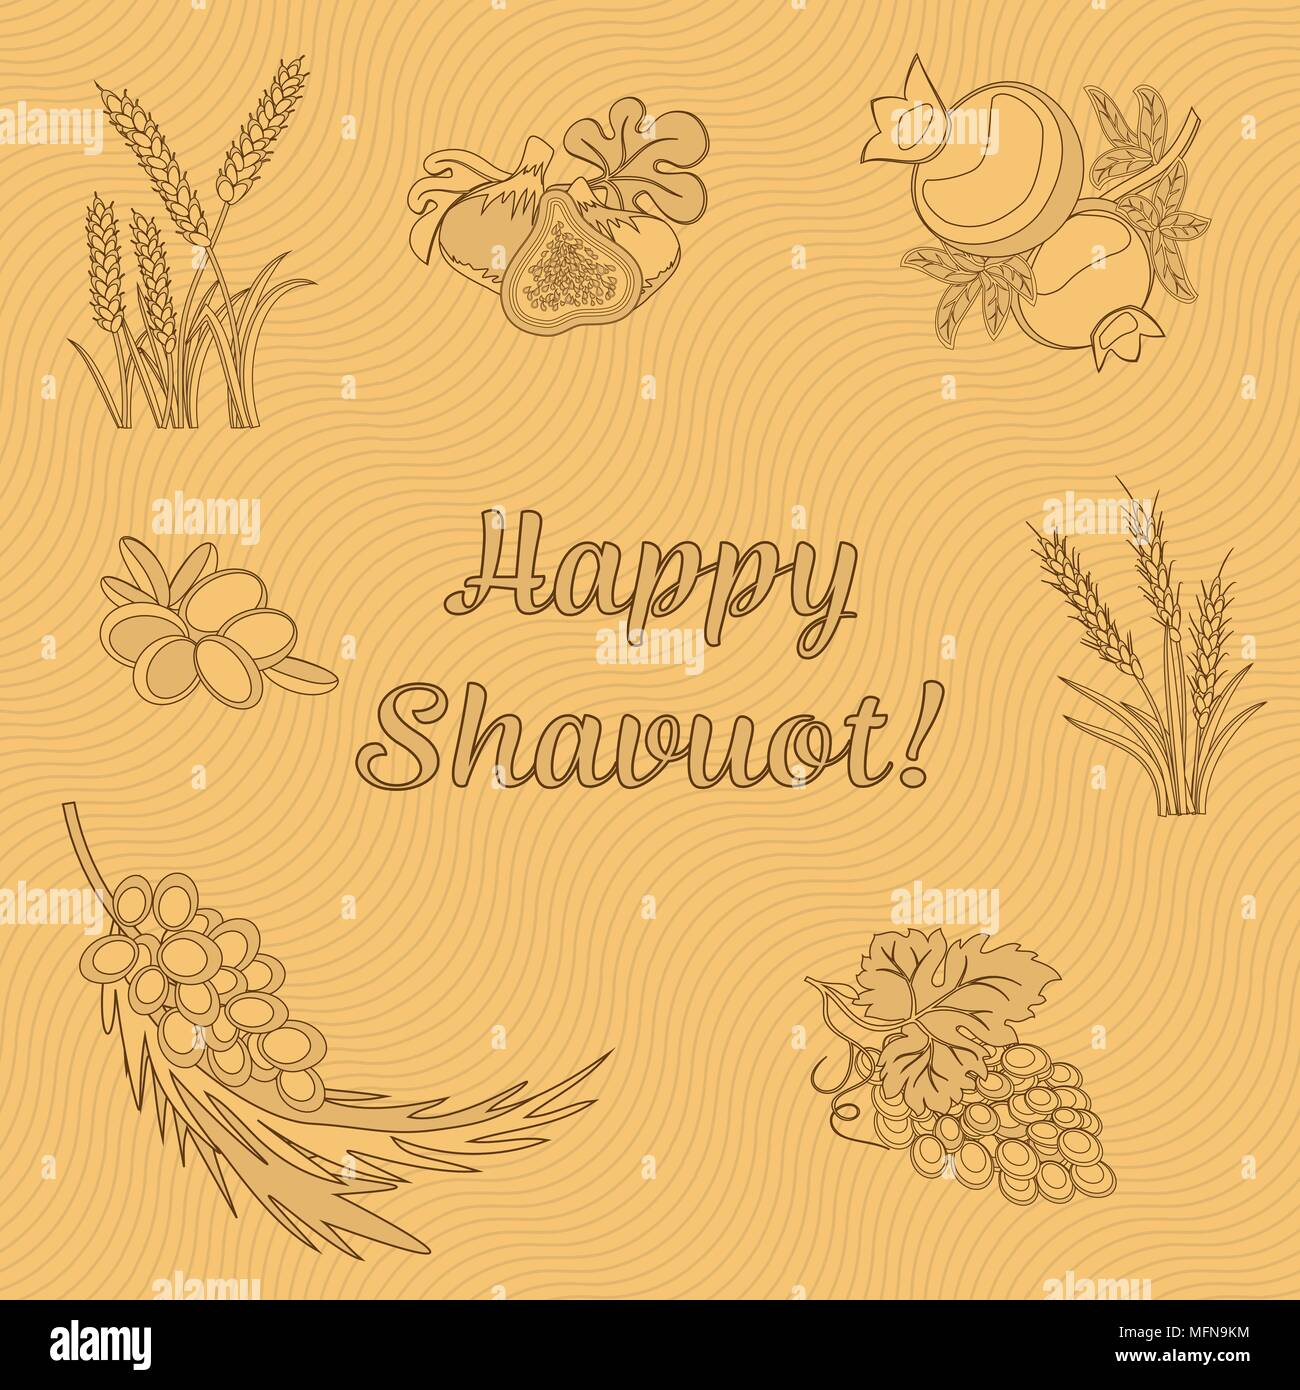 Seven Species of the Shavuot, set of agricultural products with inscription on Jewish holiday. Vector illustration EPS 10 - Stock Vector